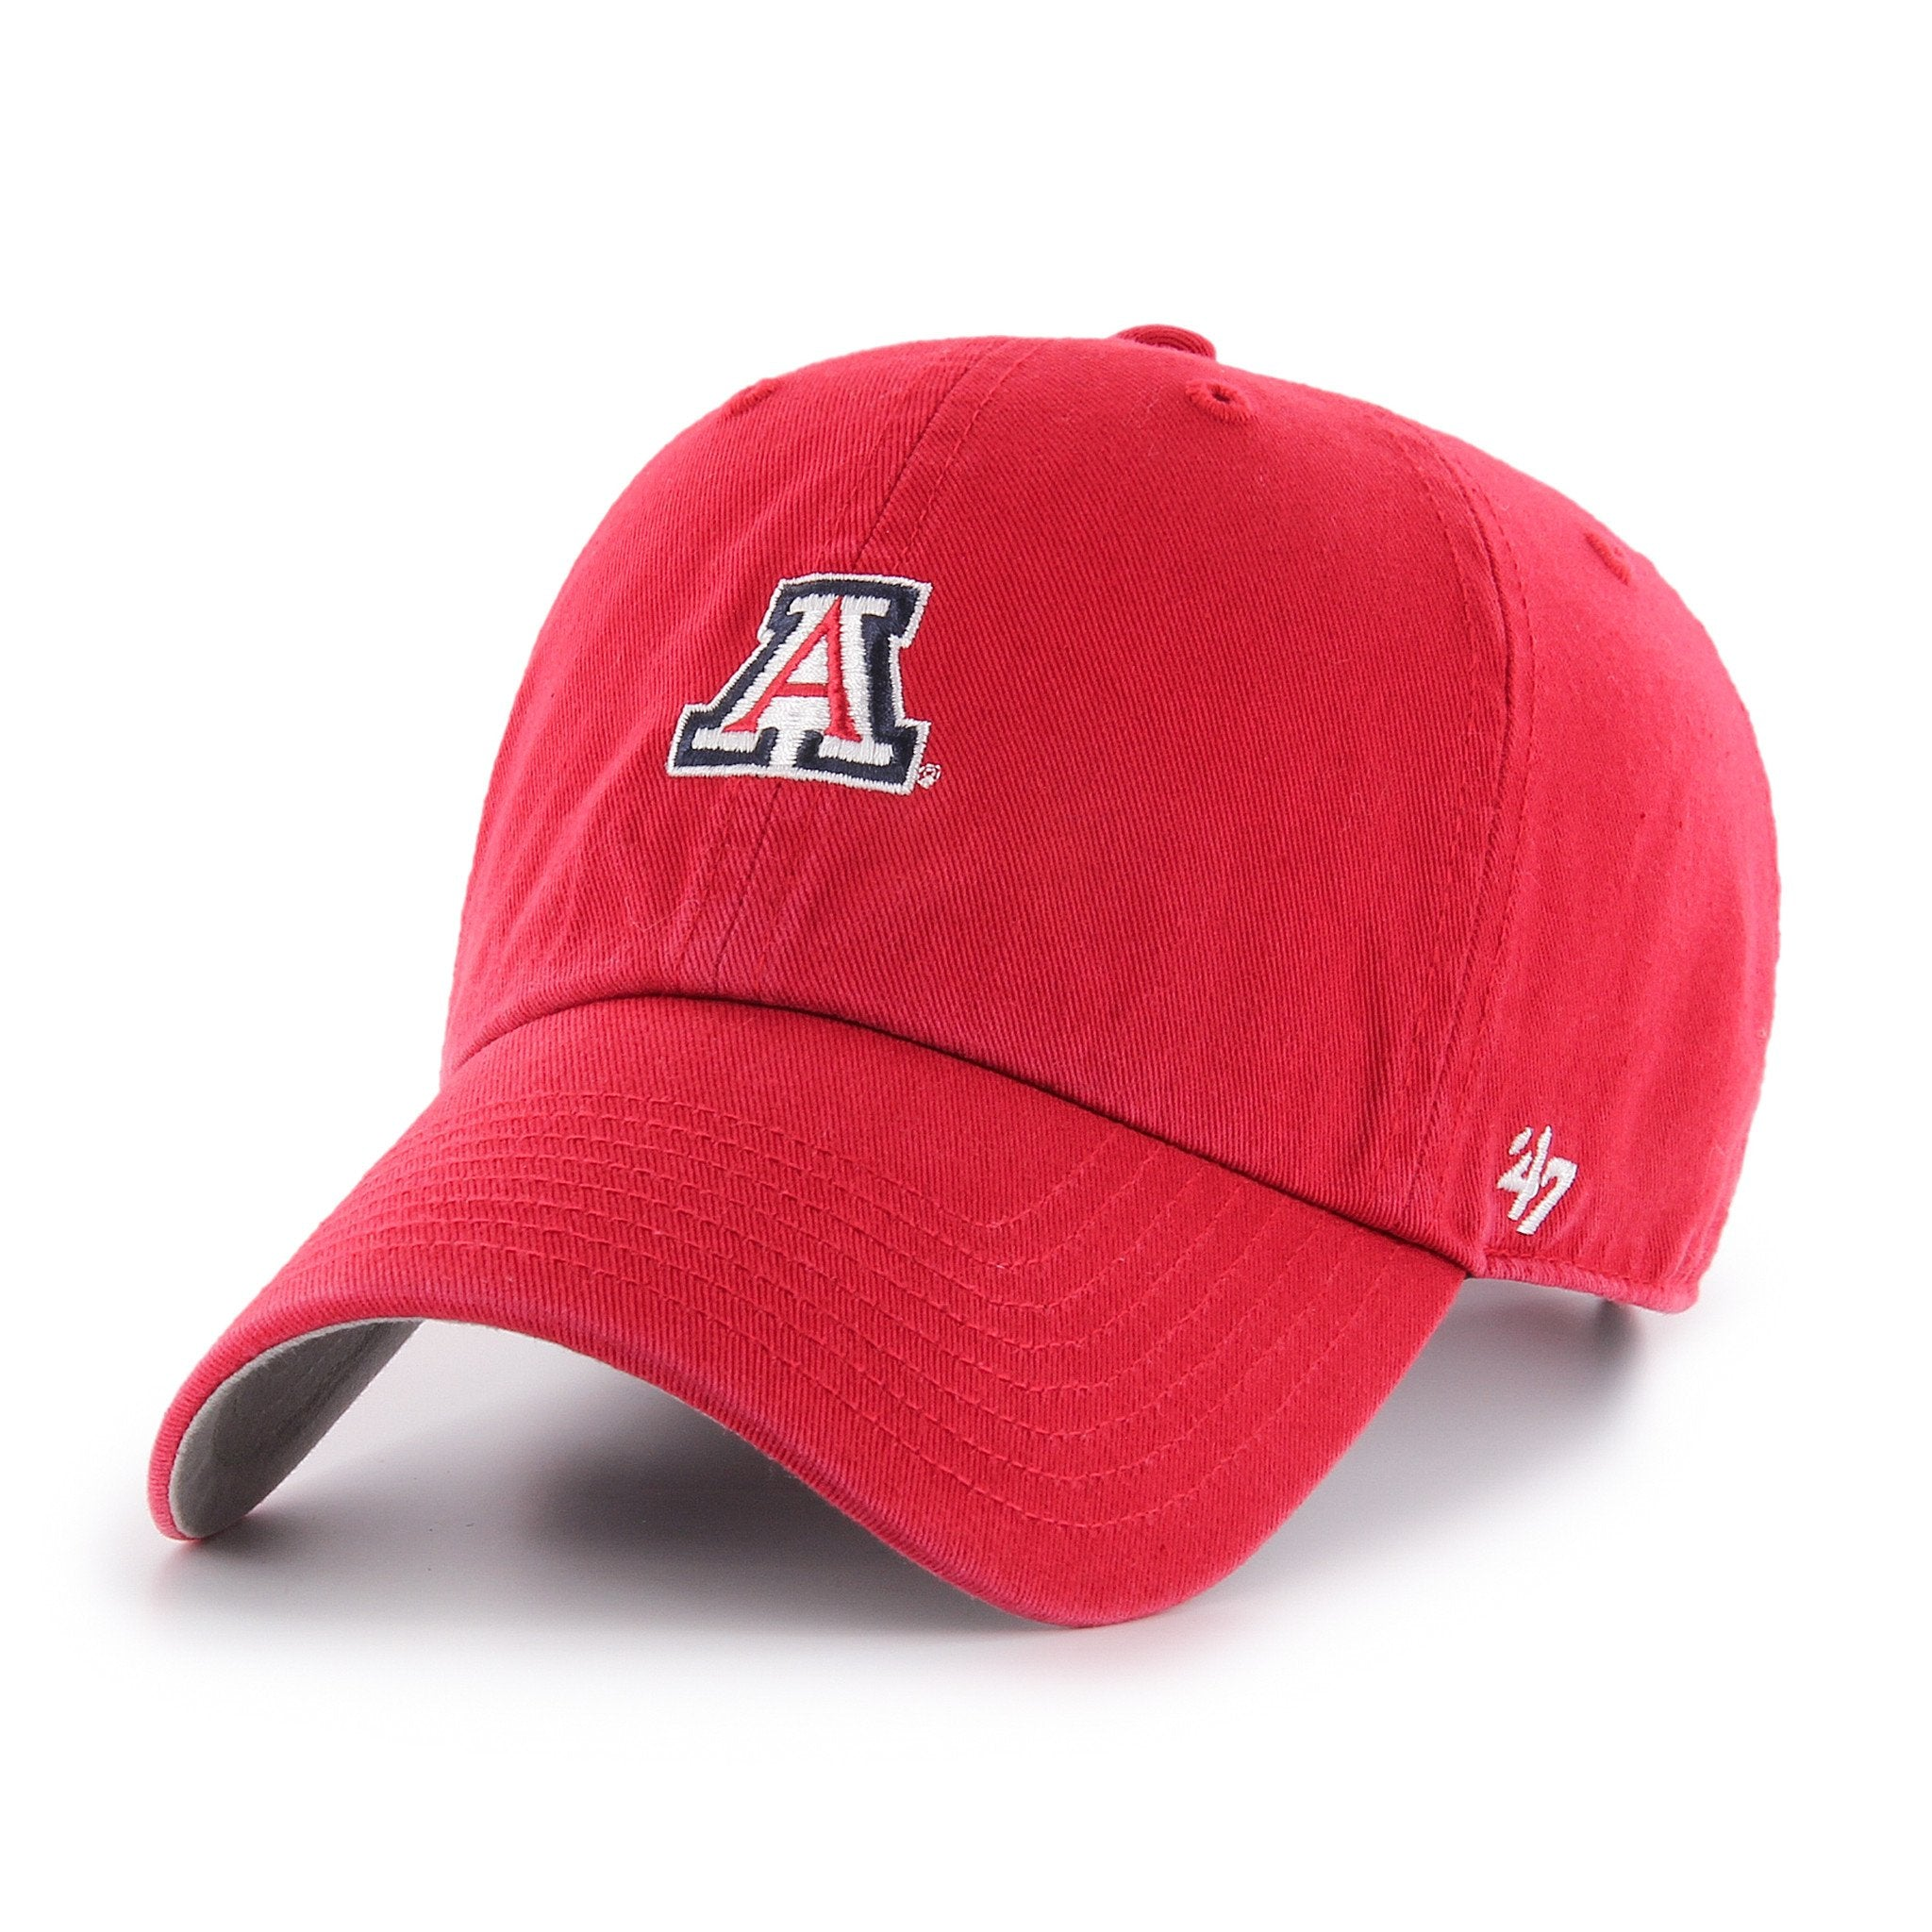 NCAA Arizona Wildcats  Elite Baserunner Red '47 CLEAN UP JSE Hat Front View